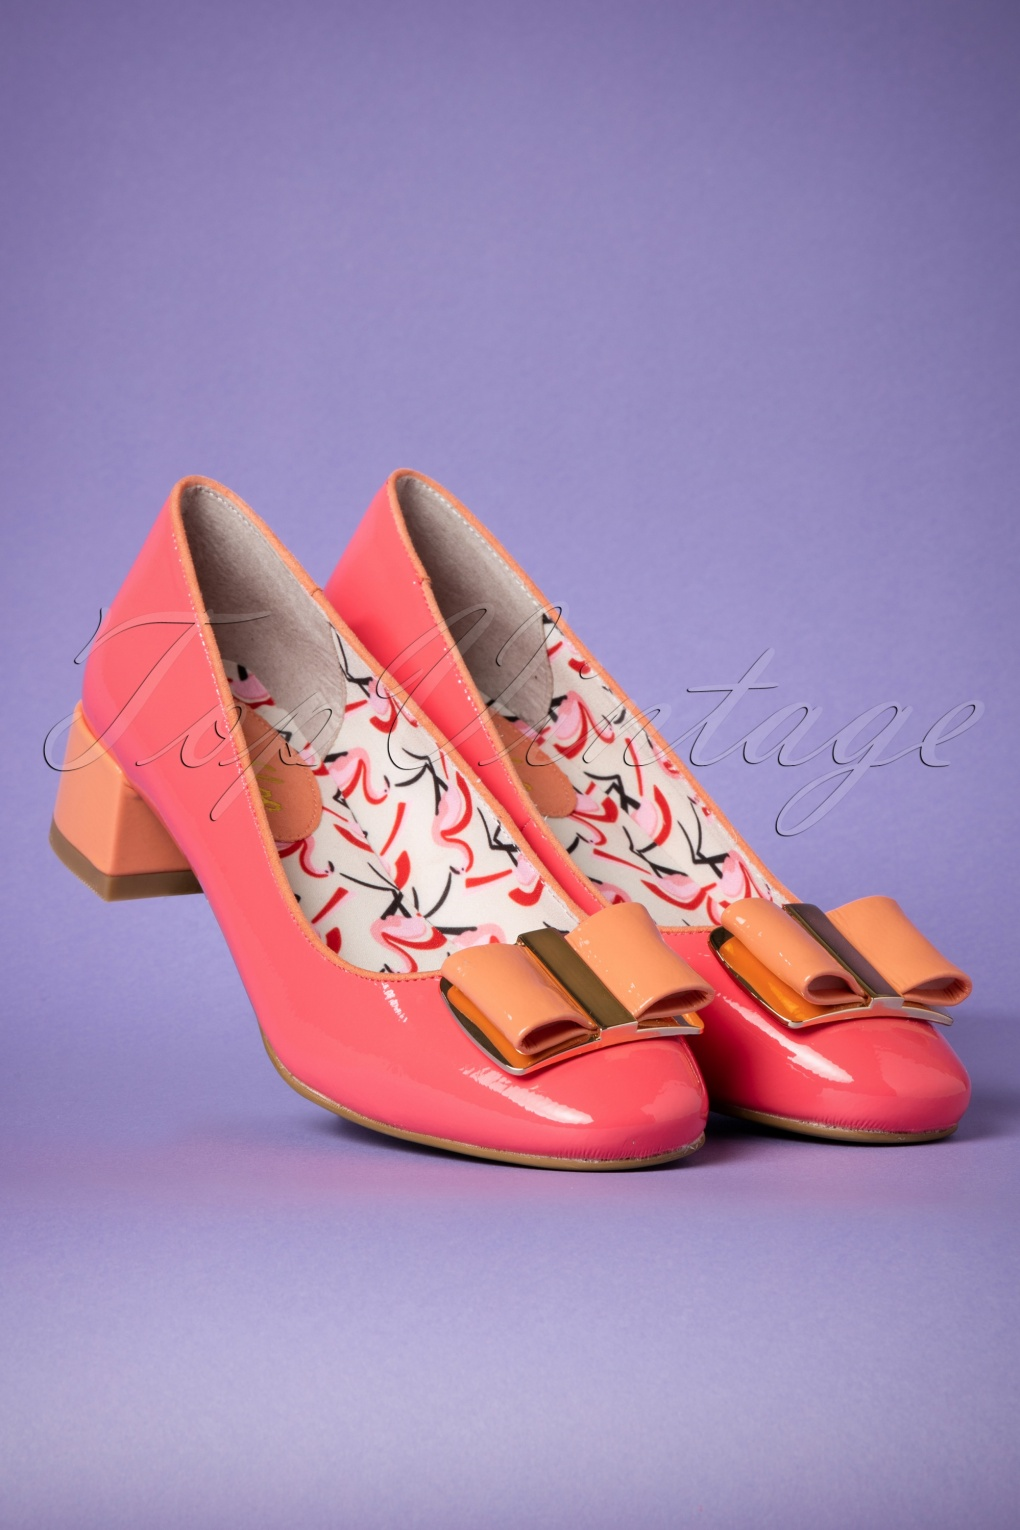 Retro Vintage Flats and Low Heel Shoes 60s June Patent Pumps in Coral £60.85 AT vintagedancer.com